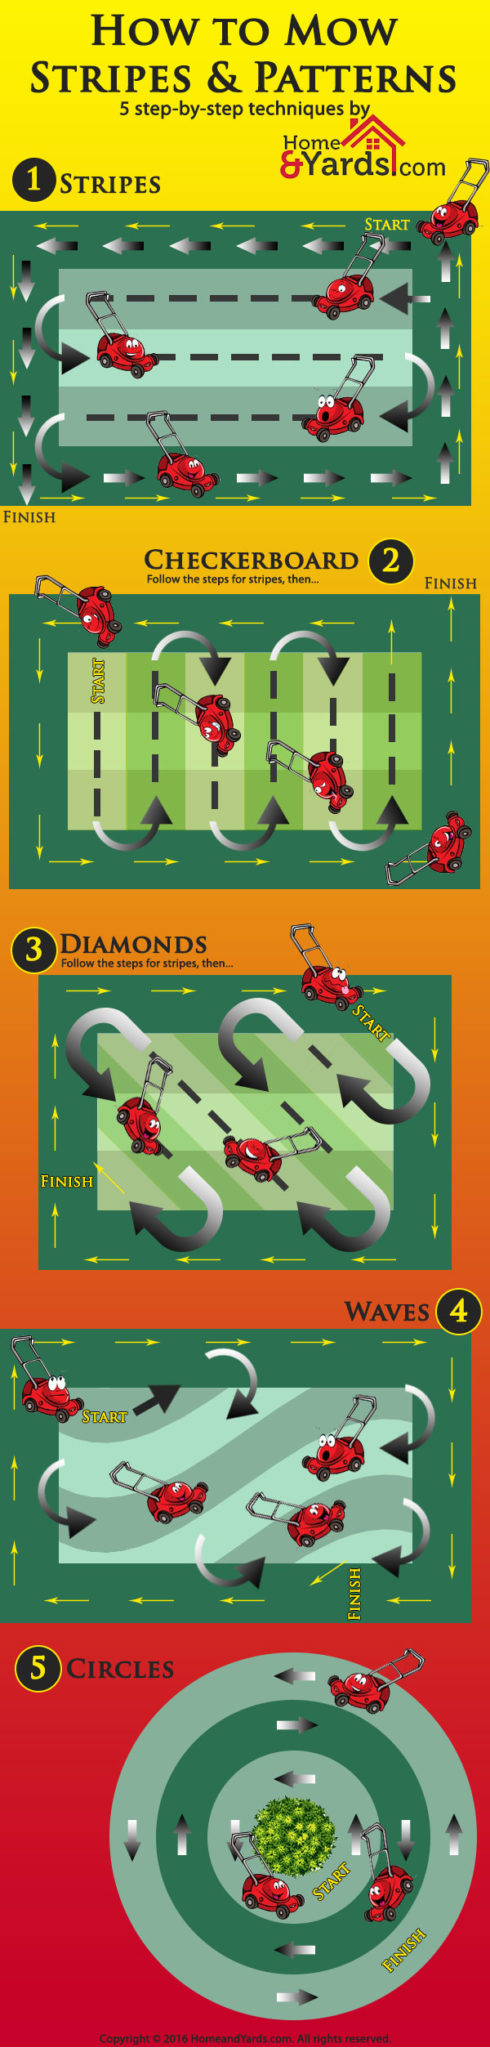 how-to-mow-stripes-and-patterns-in-your-lawn